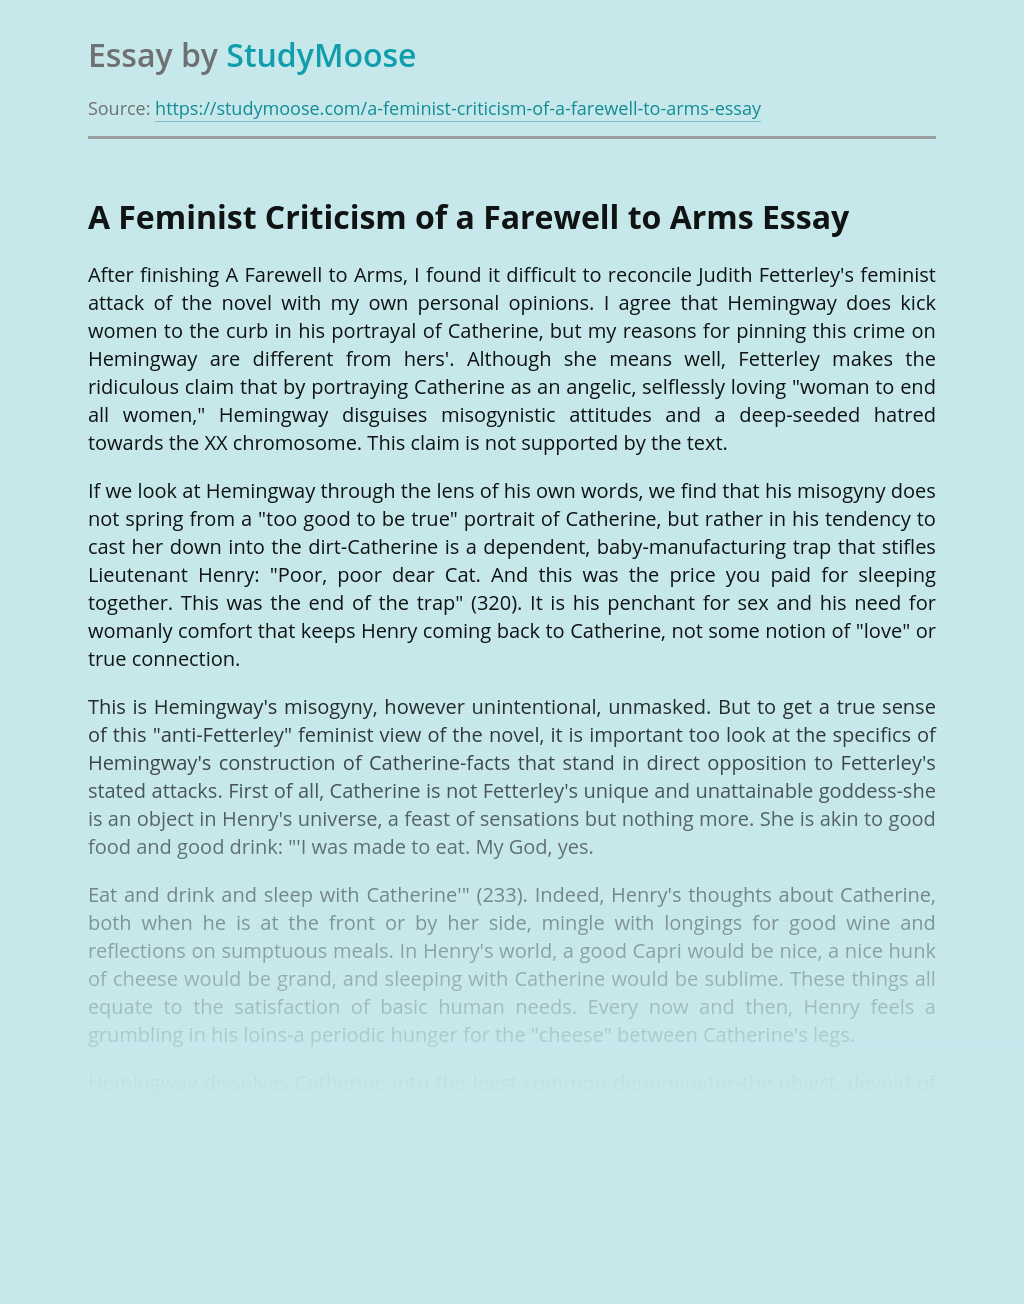 A Feminist Criticism of a Farewell to Arms